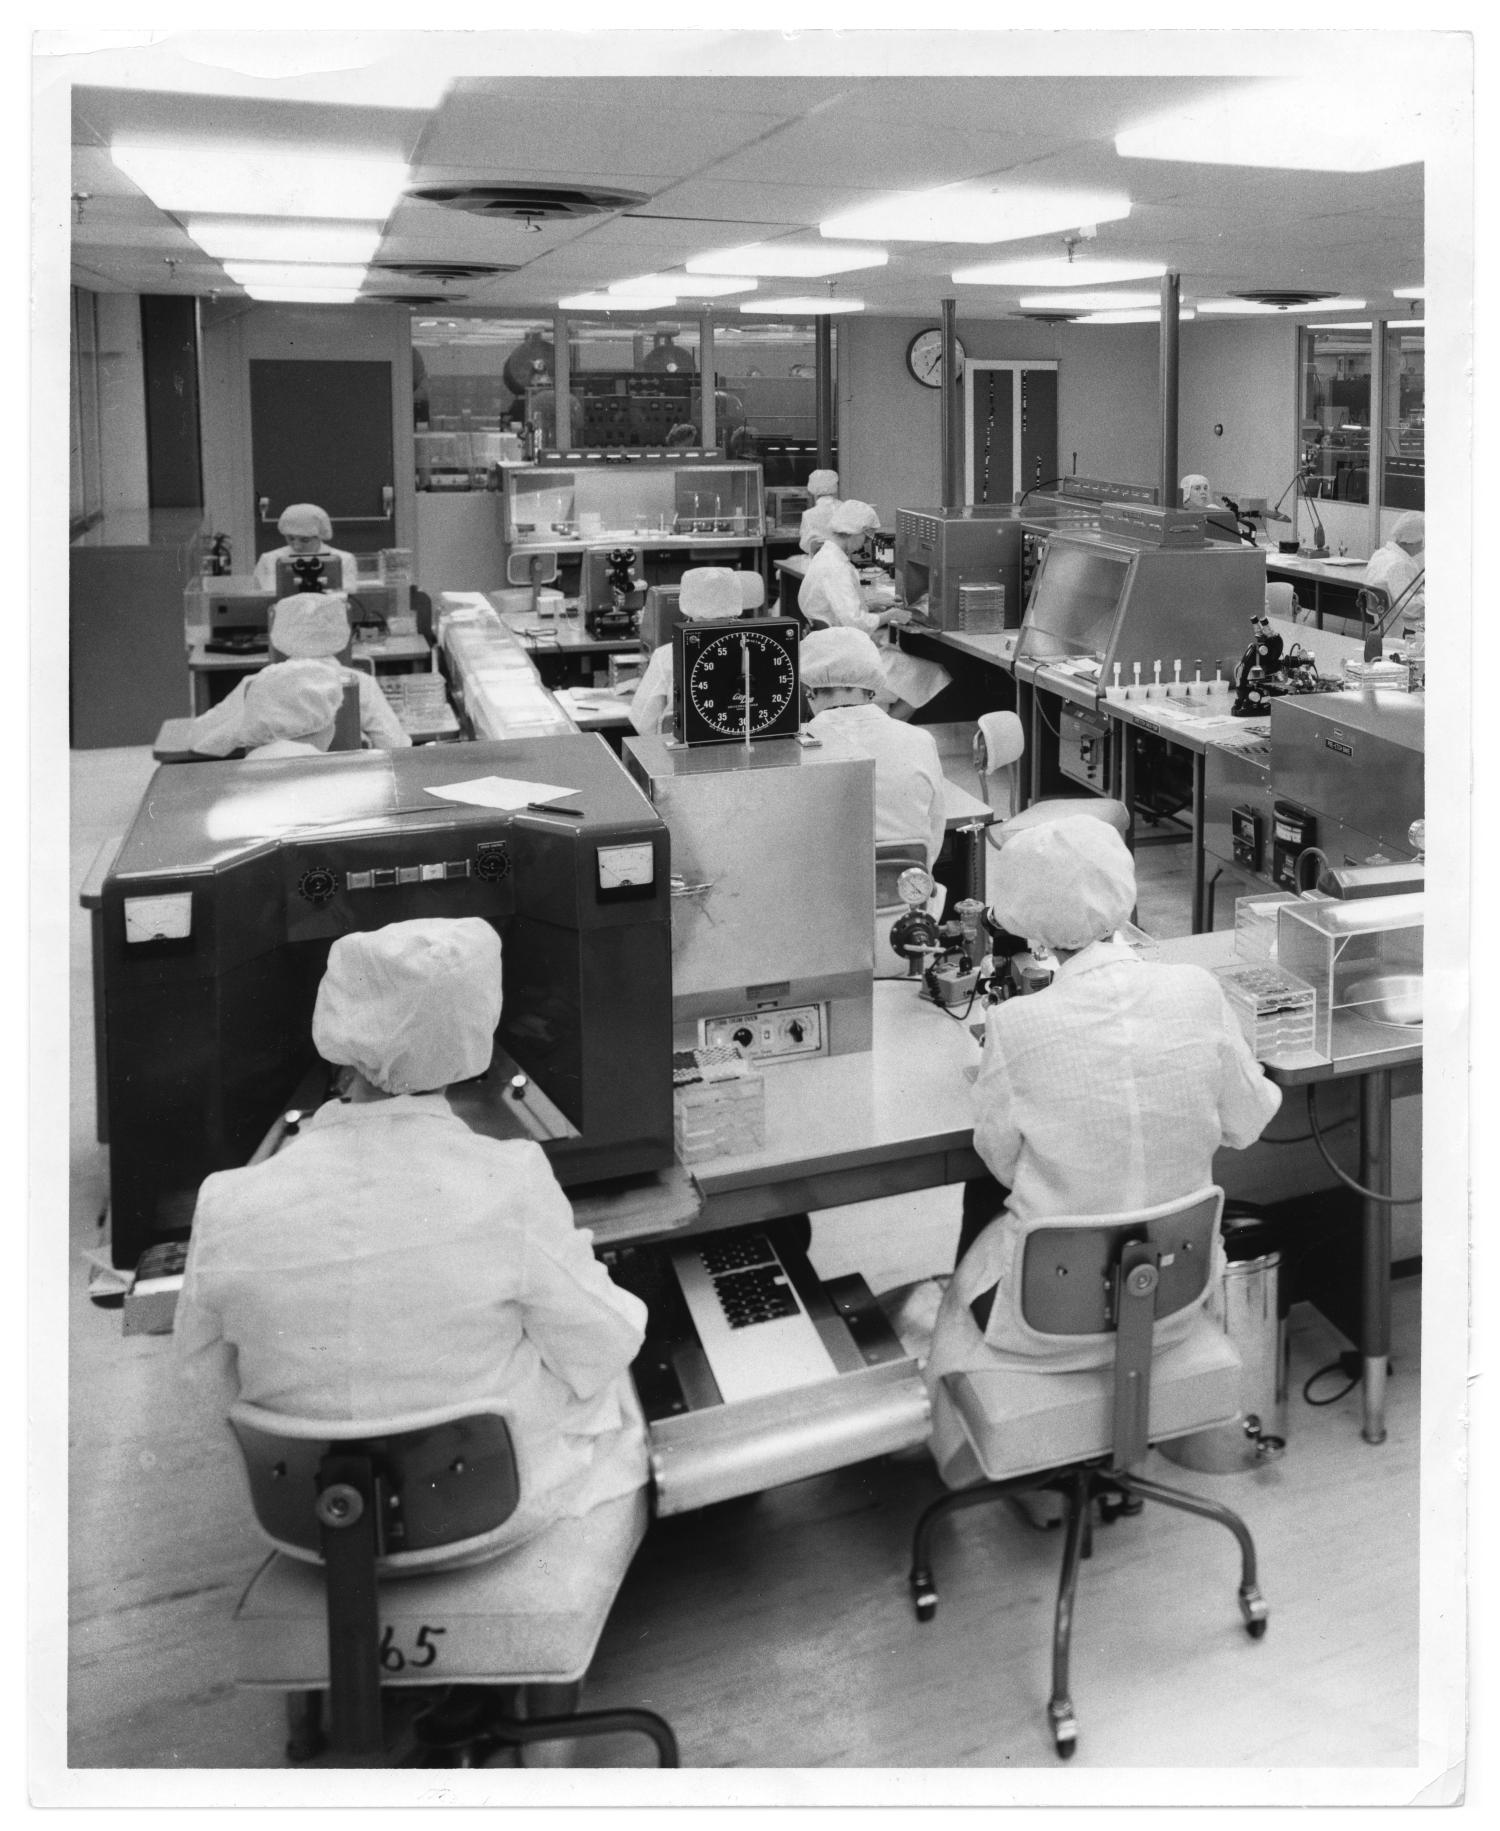 Texas Instruments, Photograph of several employees in a laboratory at Texas Instruments. The employees are all sitting down at tables with laboratory equipment; they are wearing lab coats and hair coverings.,